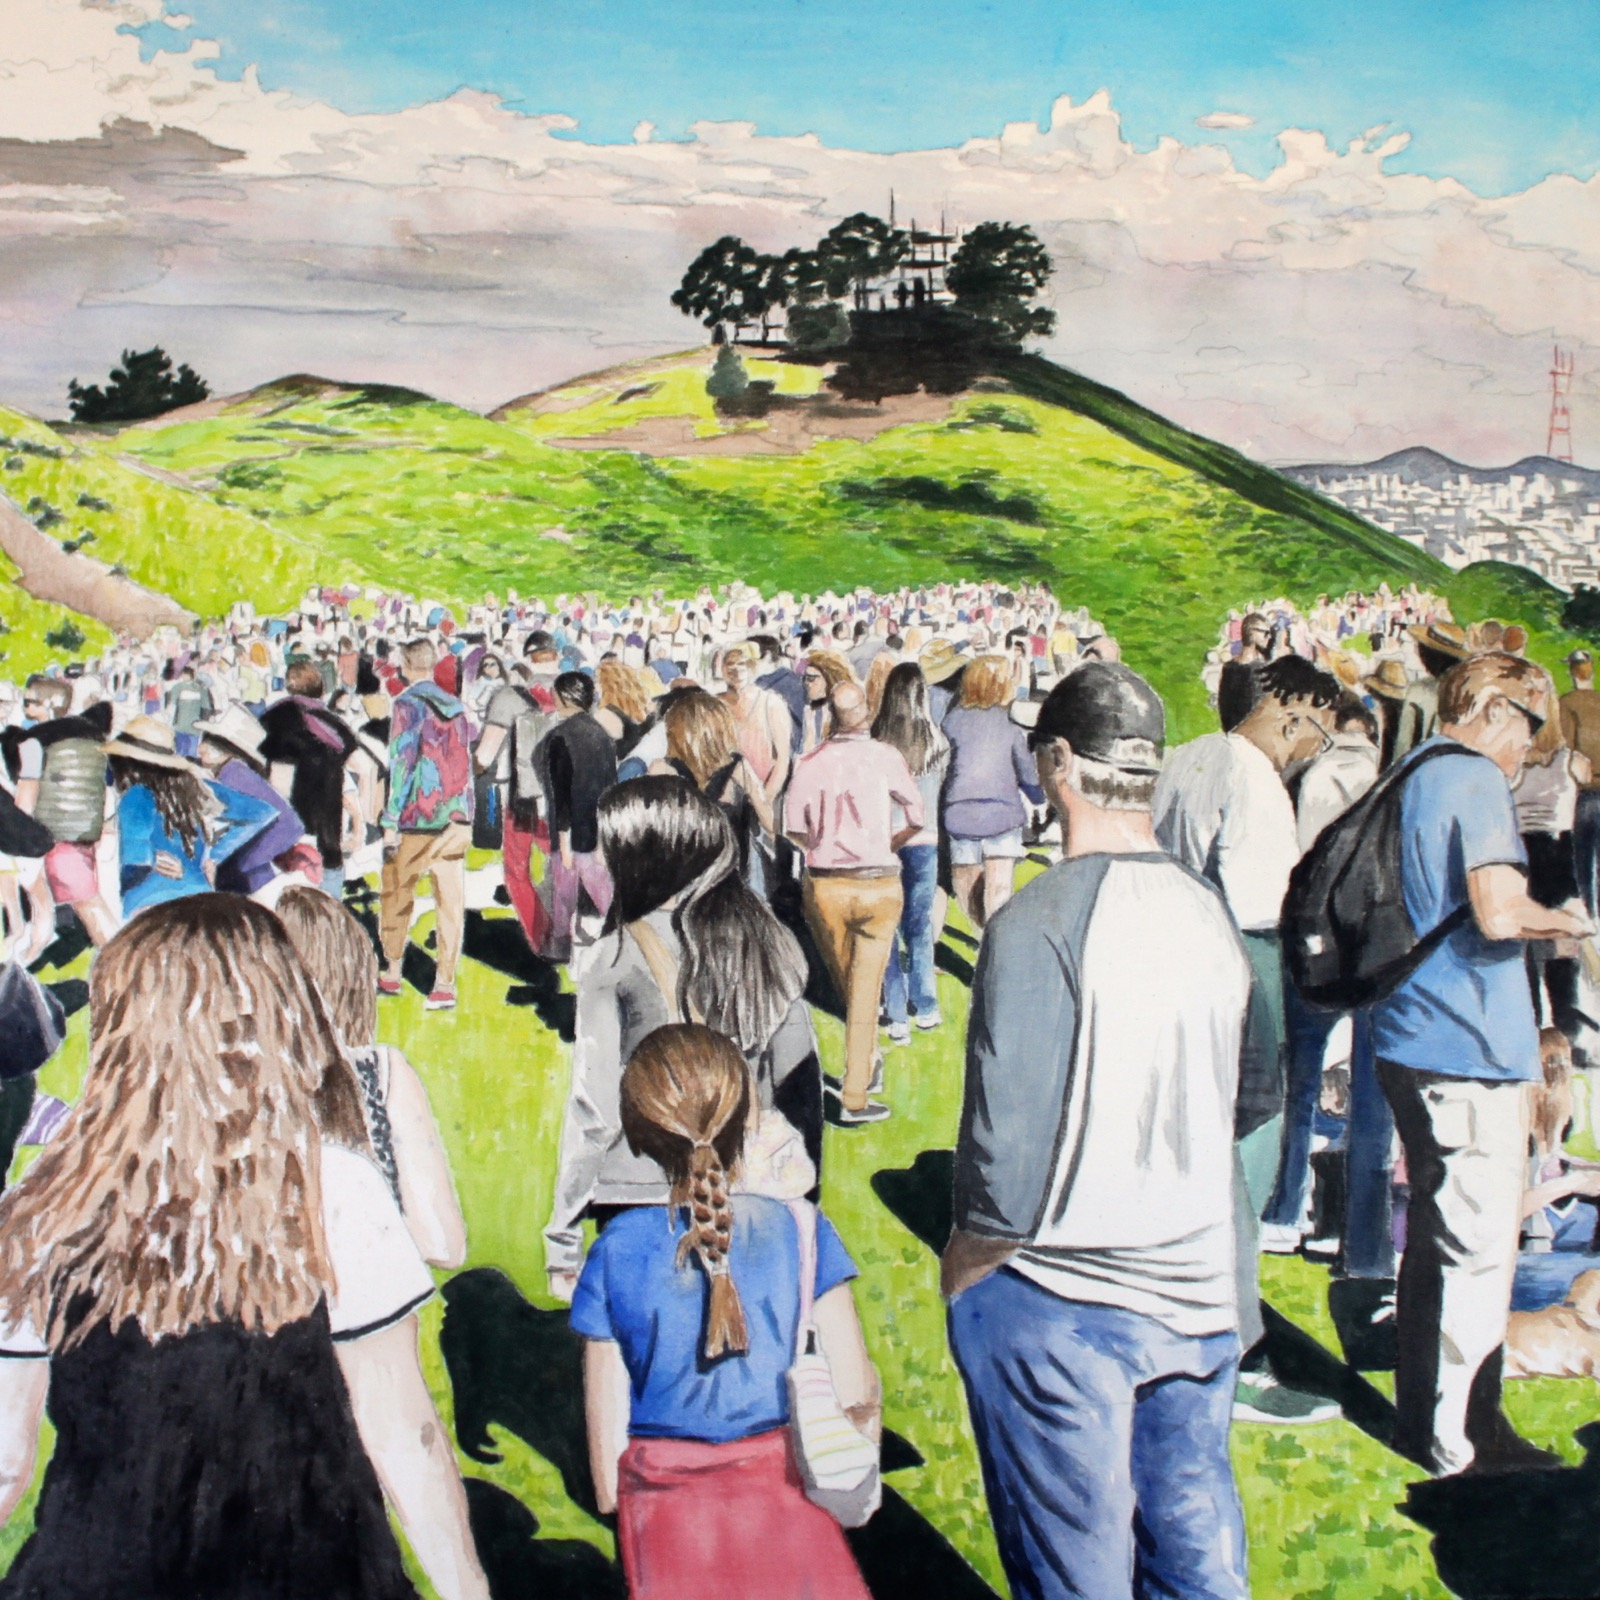 Bernal Hill Crowd, 2016, acrylic on canvas, 36 x 36 inches